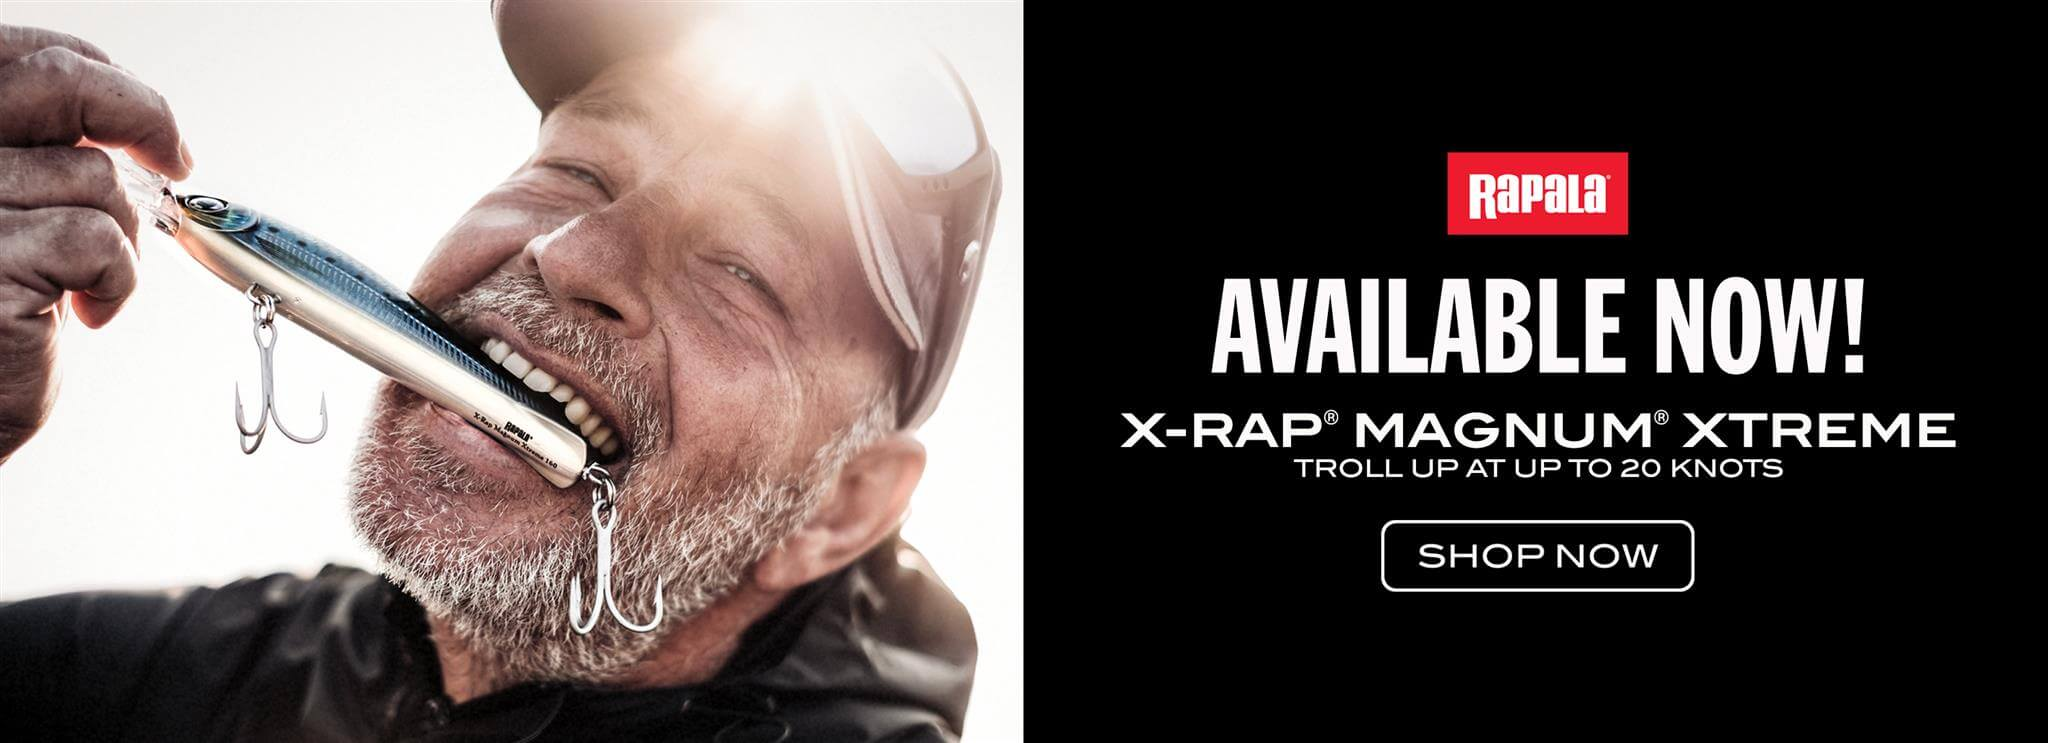 X-Rap Magnum Xtreme Available now